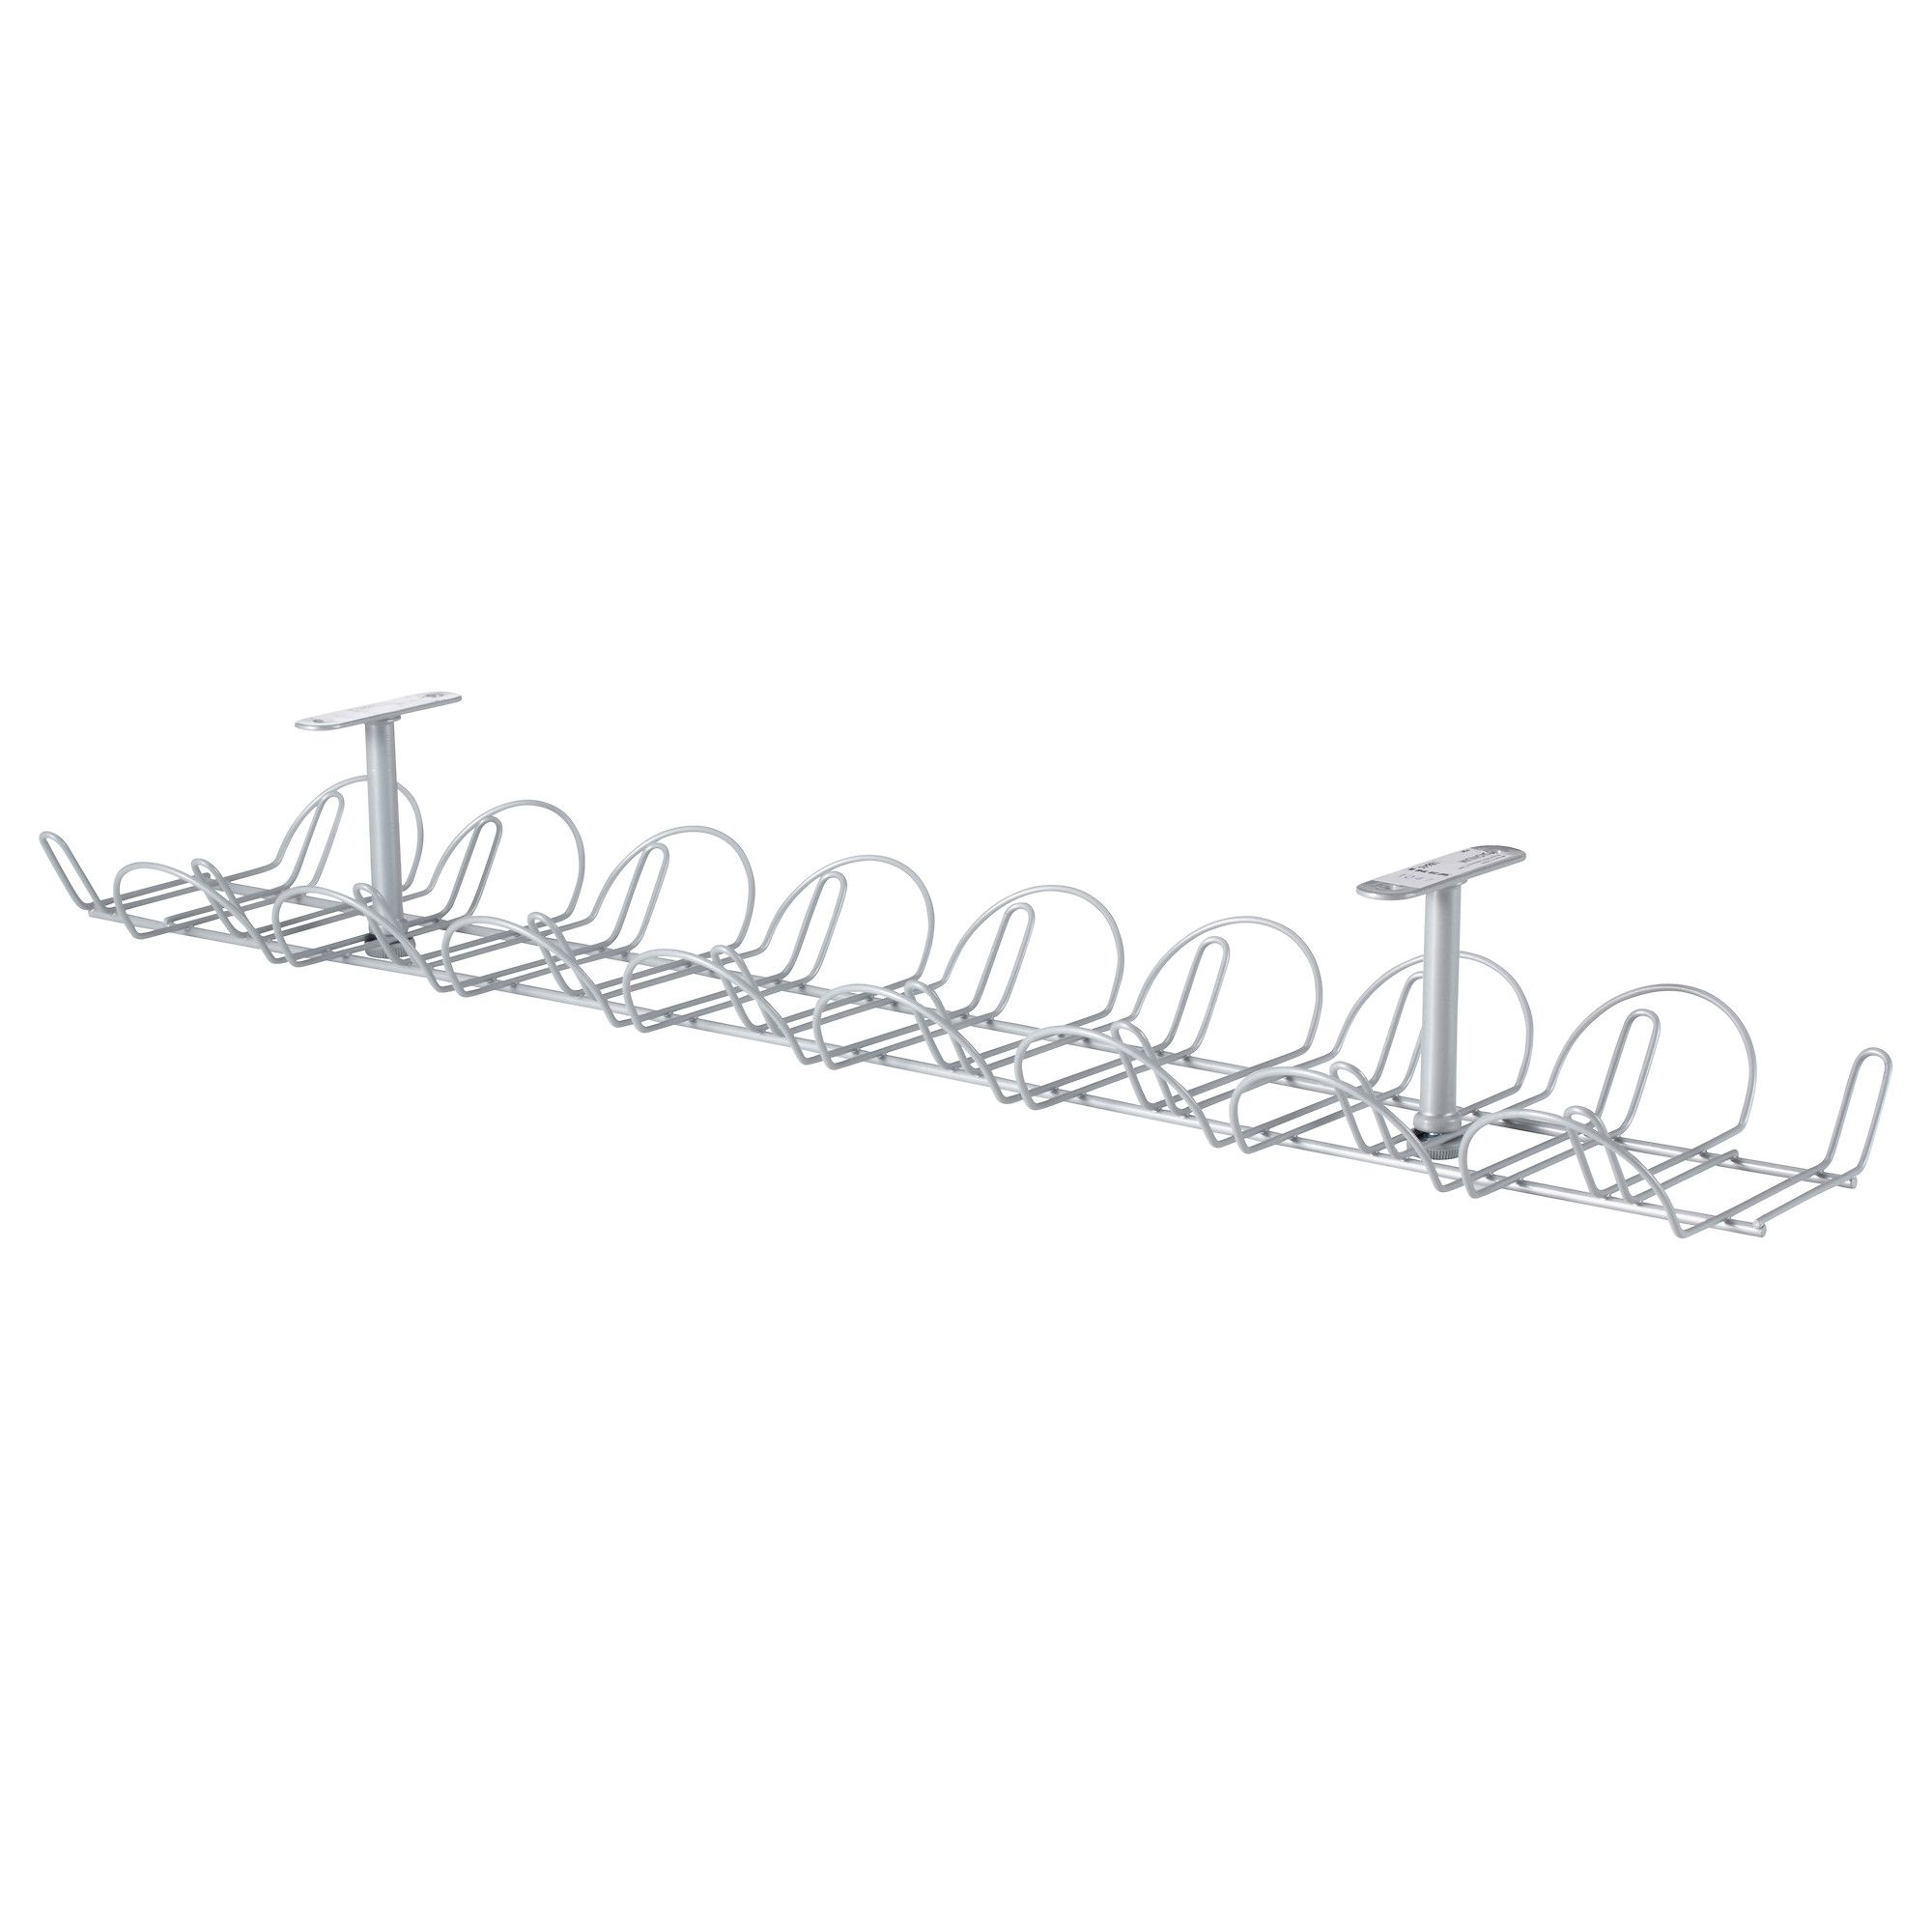 Schreibtisch Kabelmanagement Signum Cable Management Horizontal Silver Color Lobby